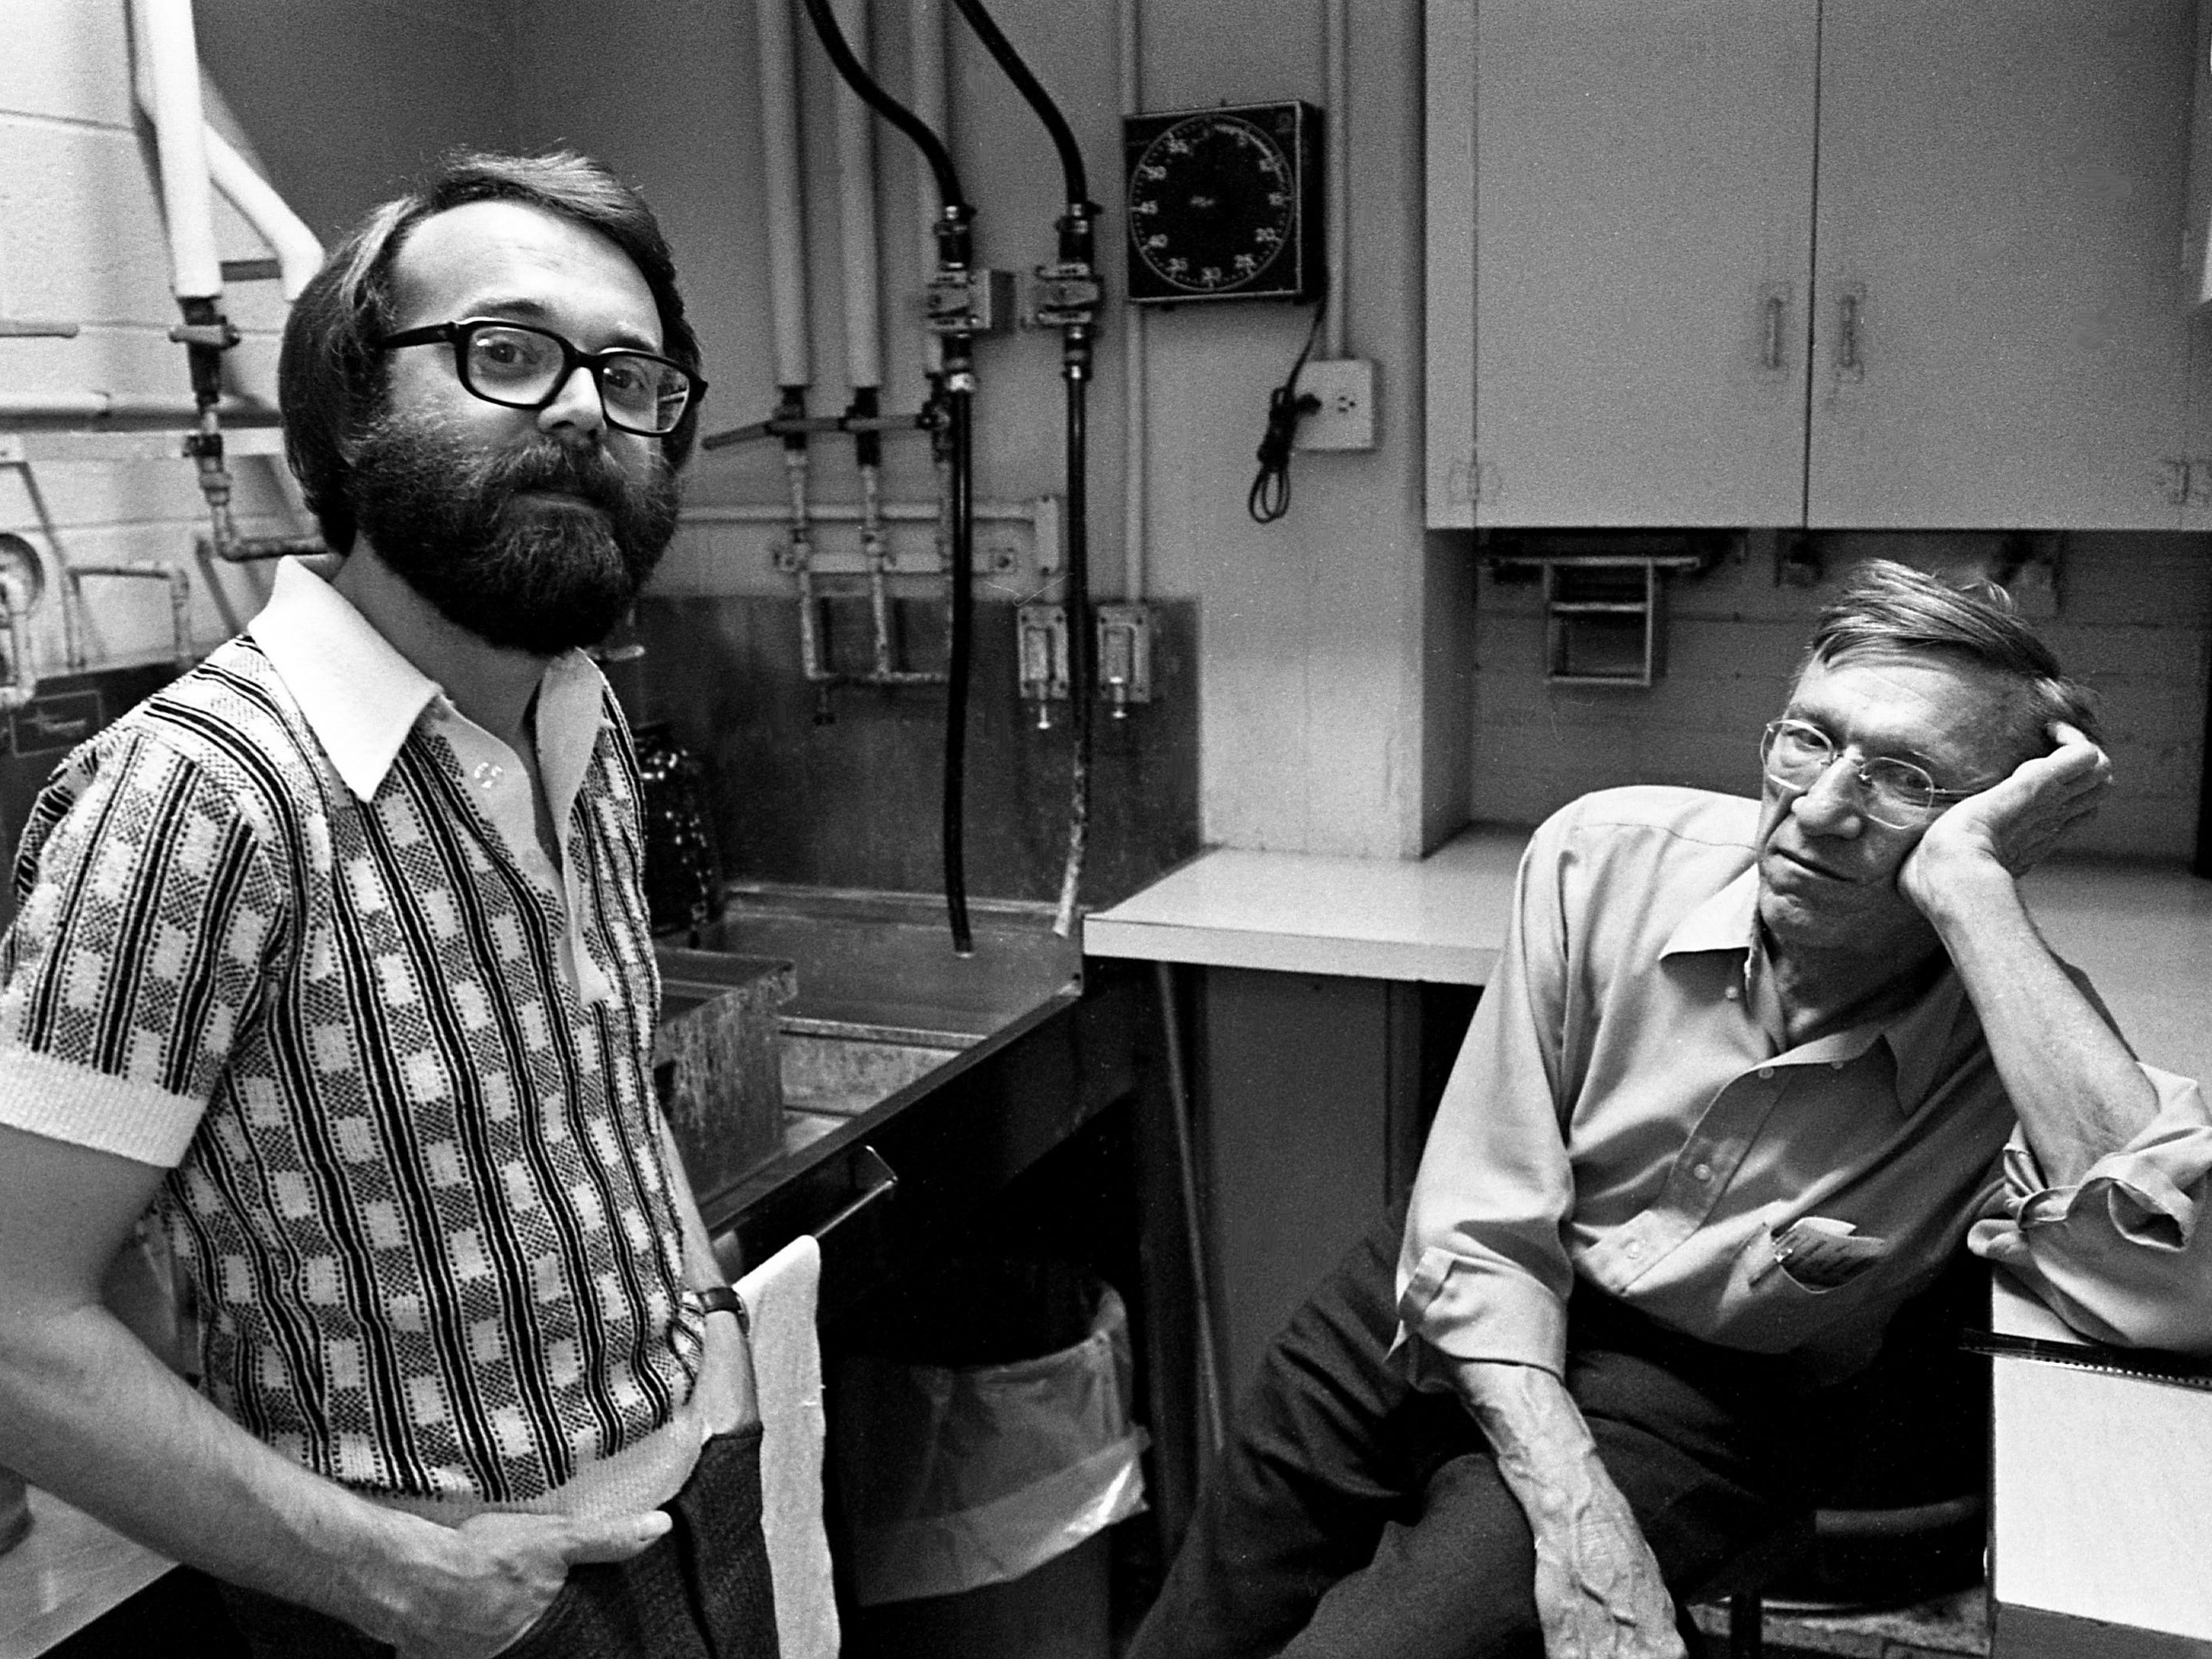 Tennessean photographer Joe Rudis, right, relaxes in the newspaper's darkroom March 18, 1977.